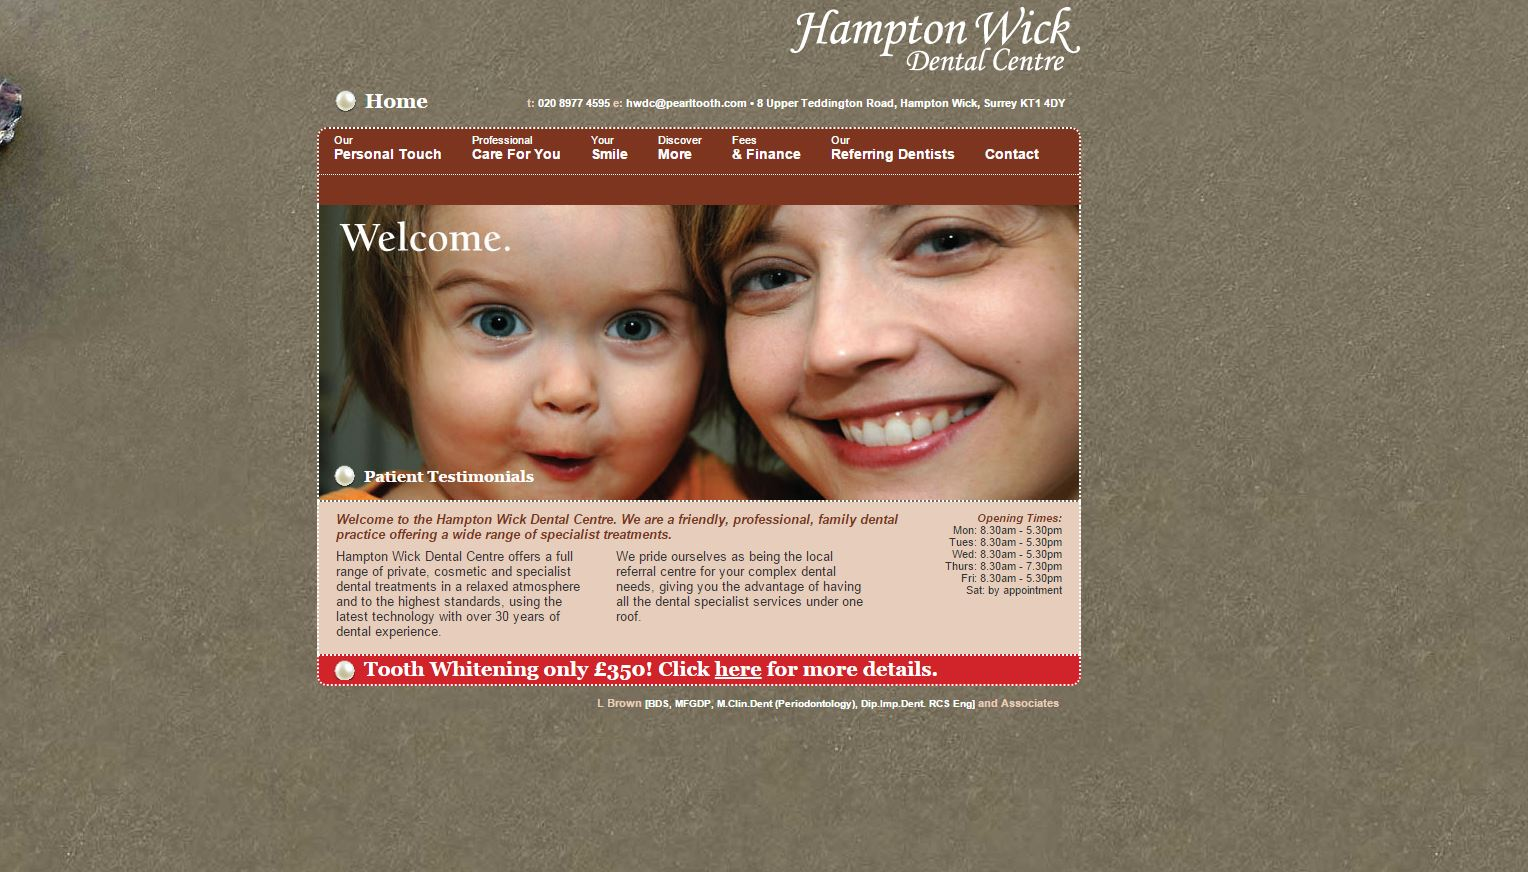 Hampton Wick Dental Centre Homepage Design